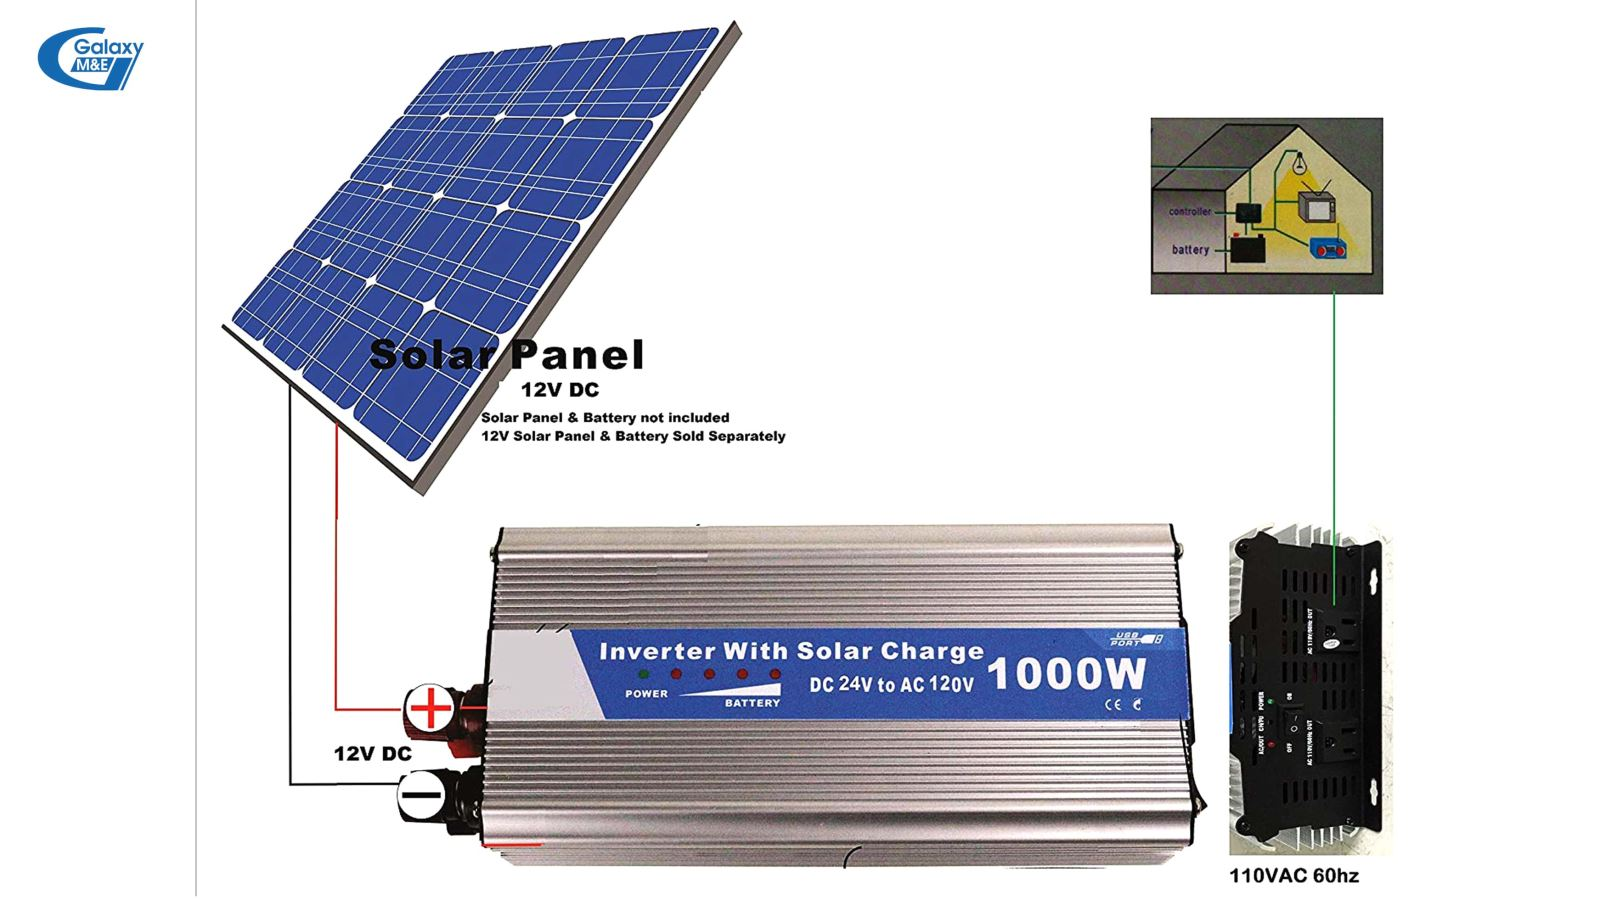 For each system, there will be different types of inverters of different manufacturers.